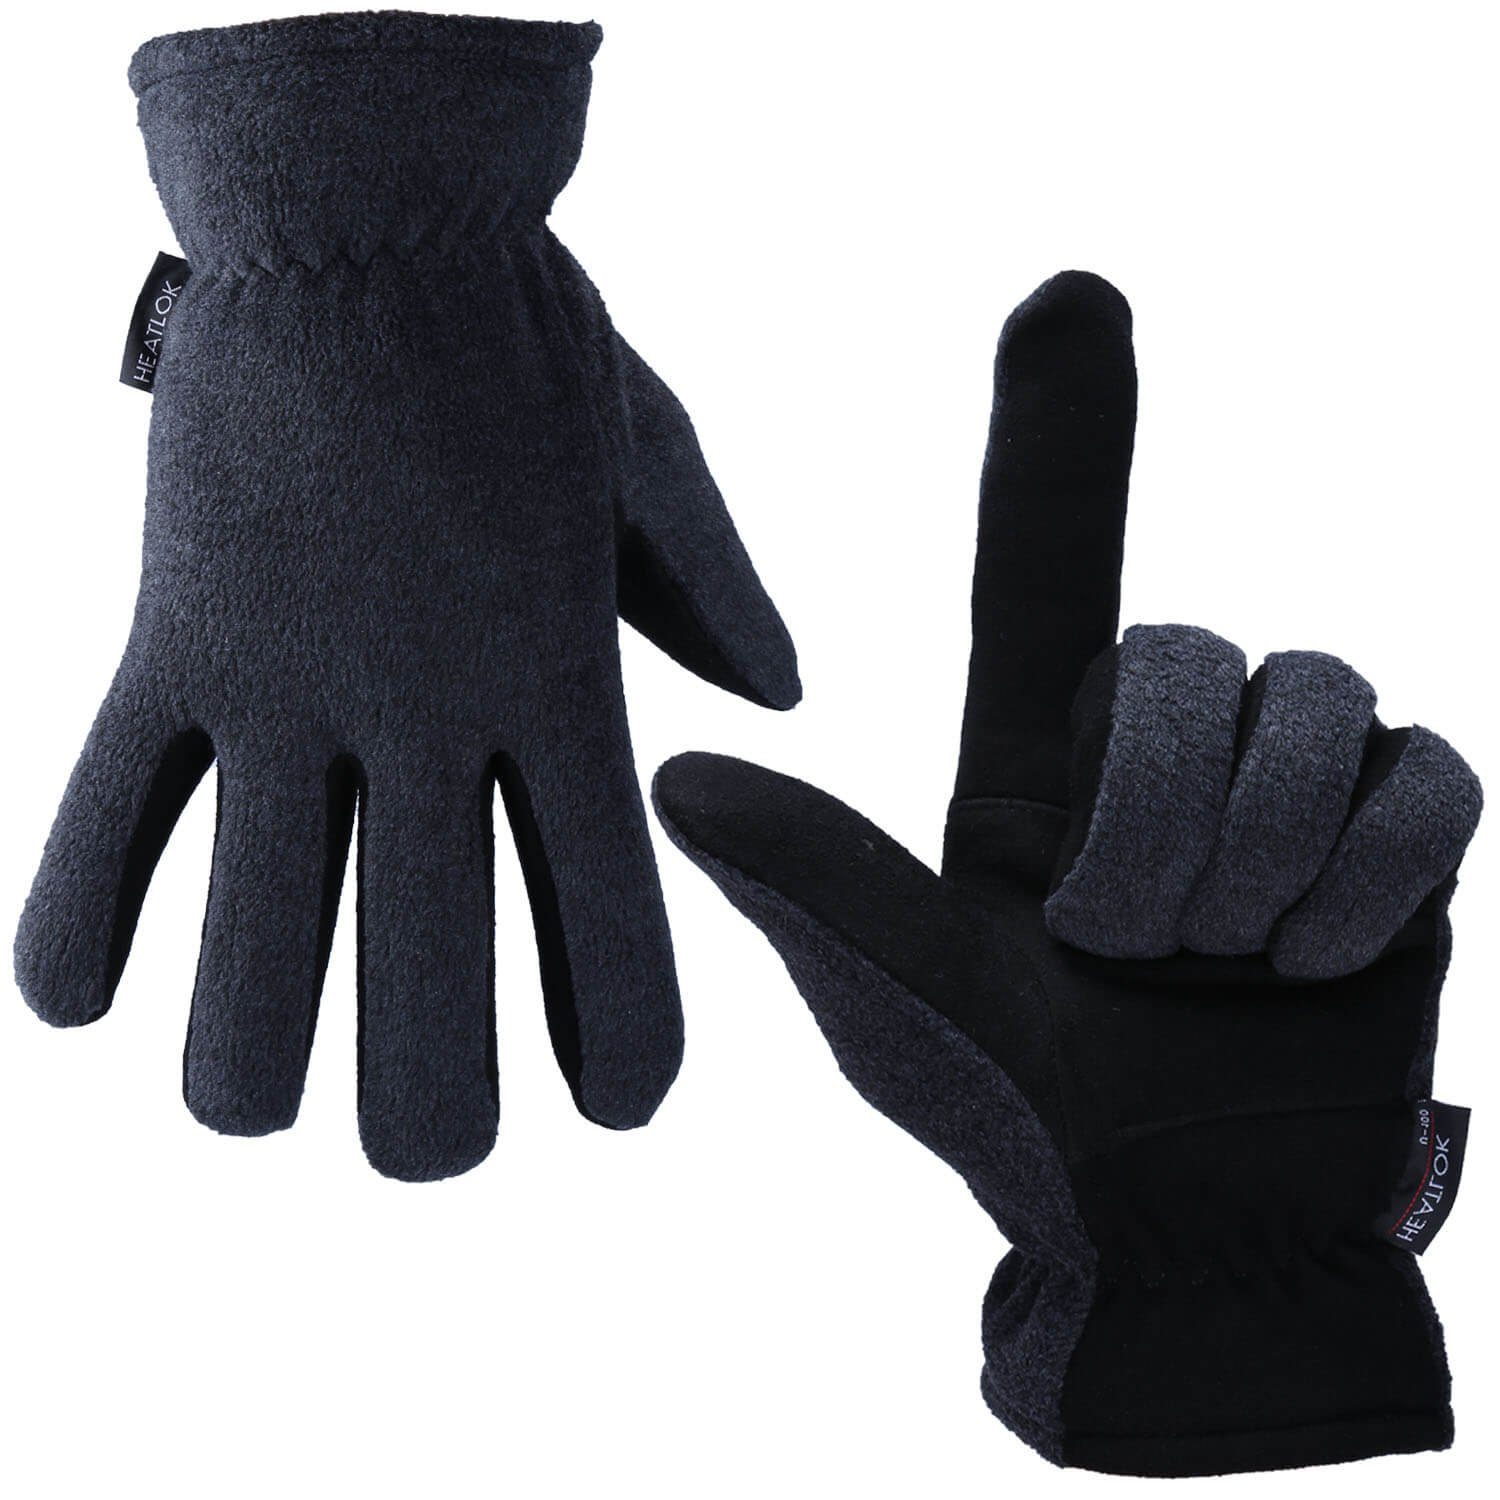 OZERO Deerskin Suede Leather Palm and Polar Fleece Back with Heatlok Insulated Cotton Layer Thermal Gloves, Large - Grey-Black